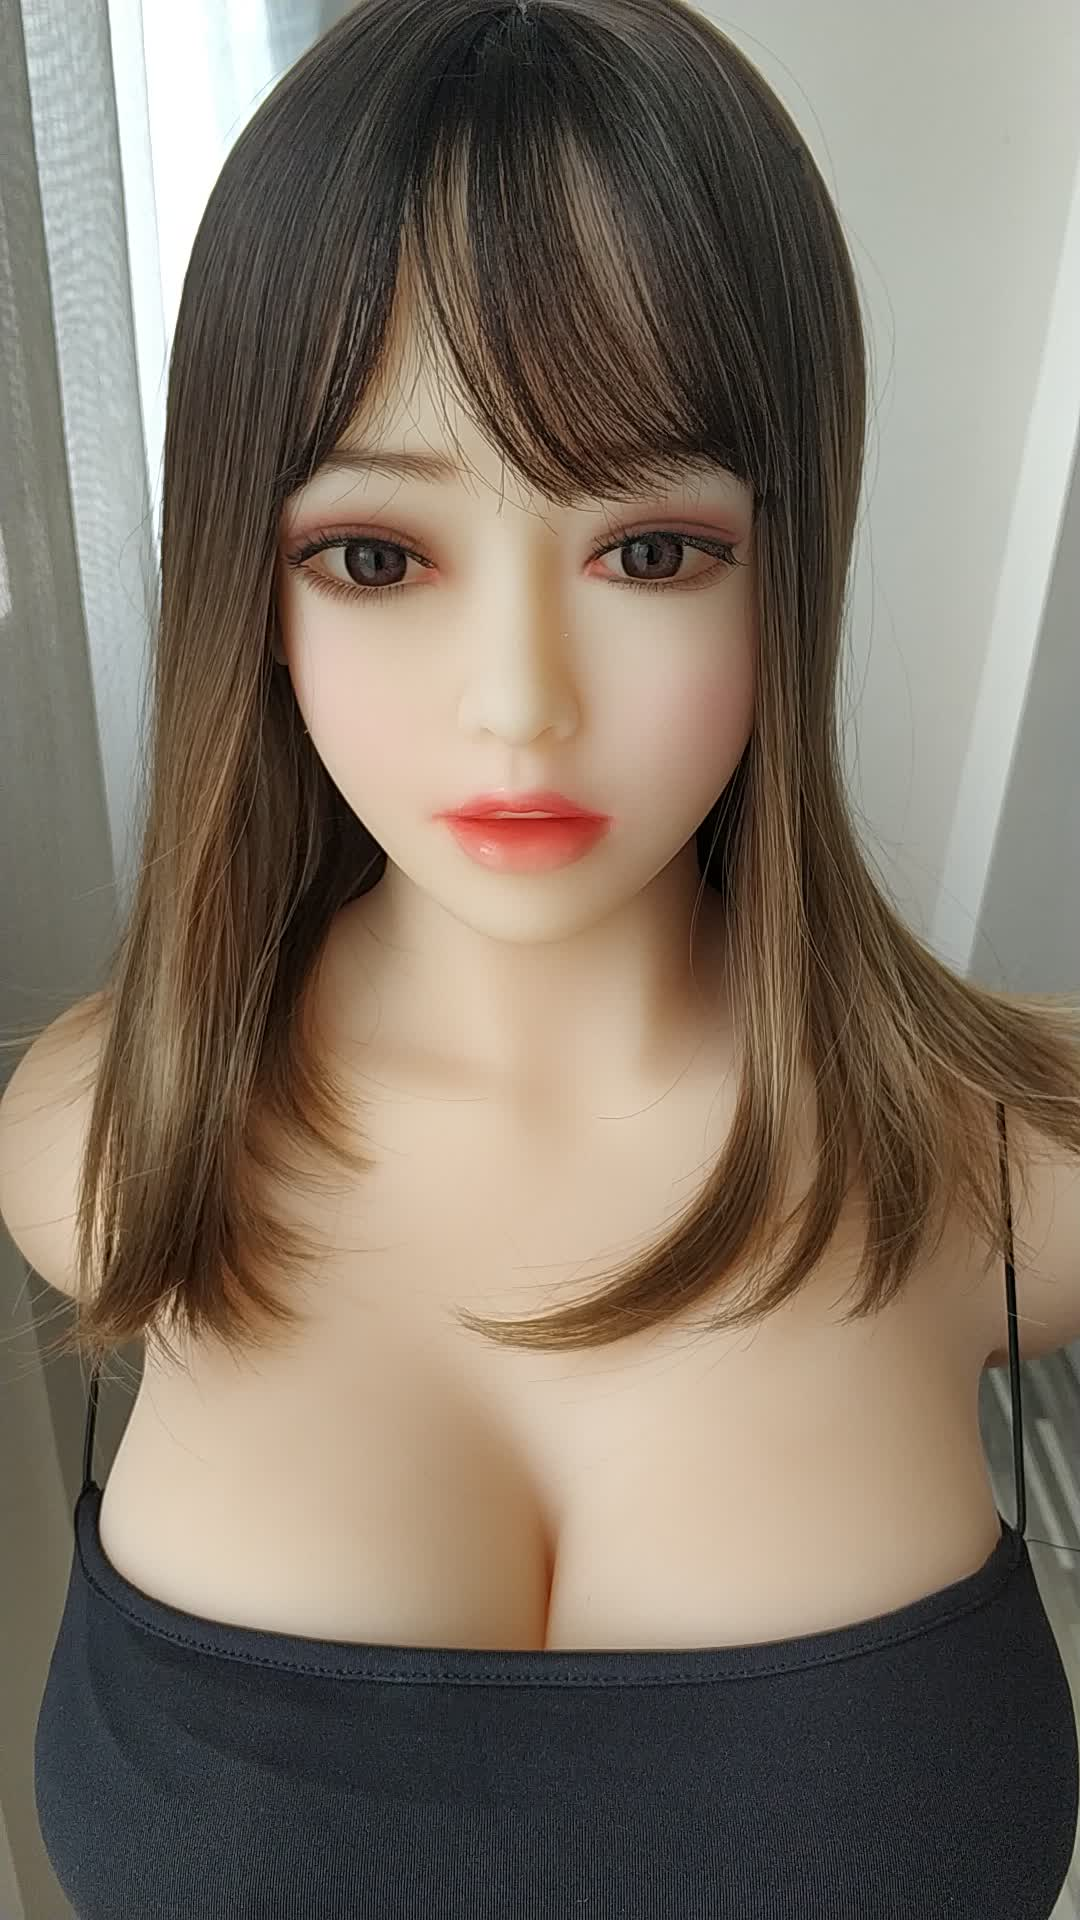 158cm Young Girl Sex Toys Lifelike Silicone Doll Sexy Body